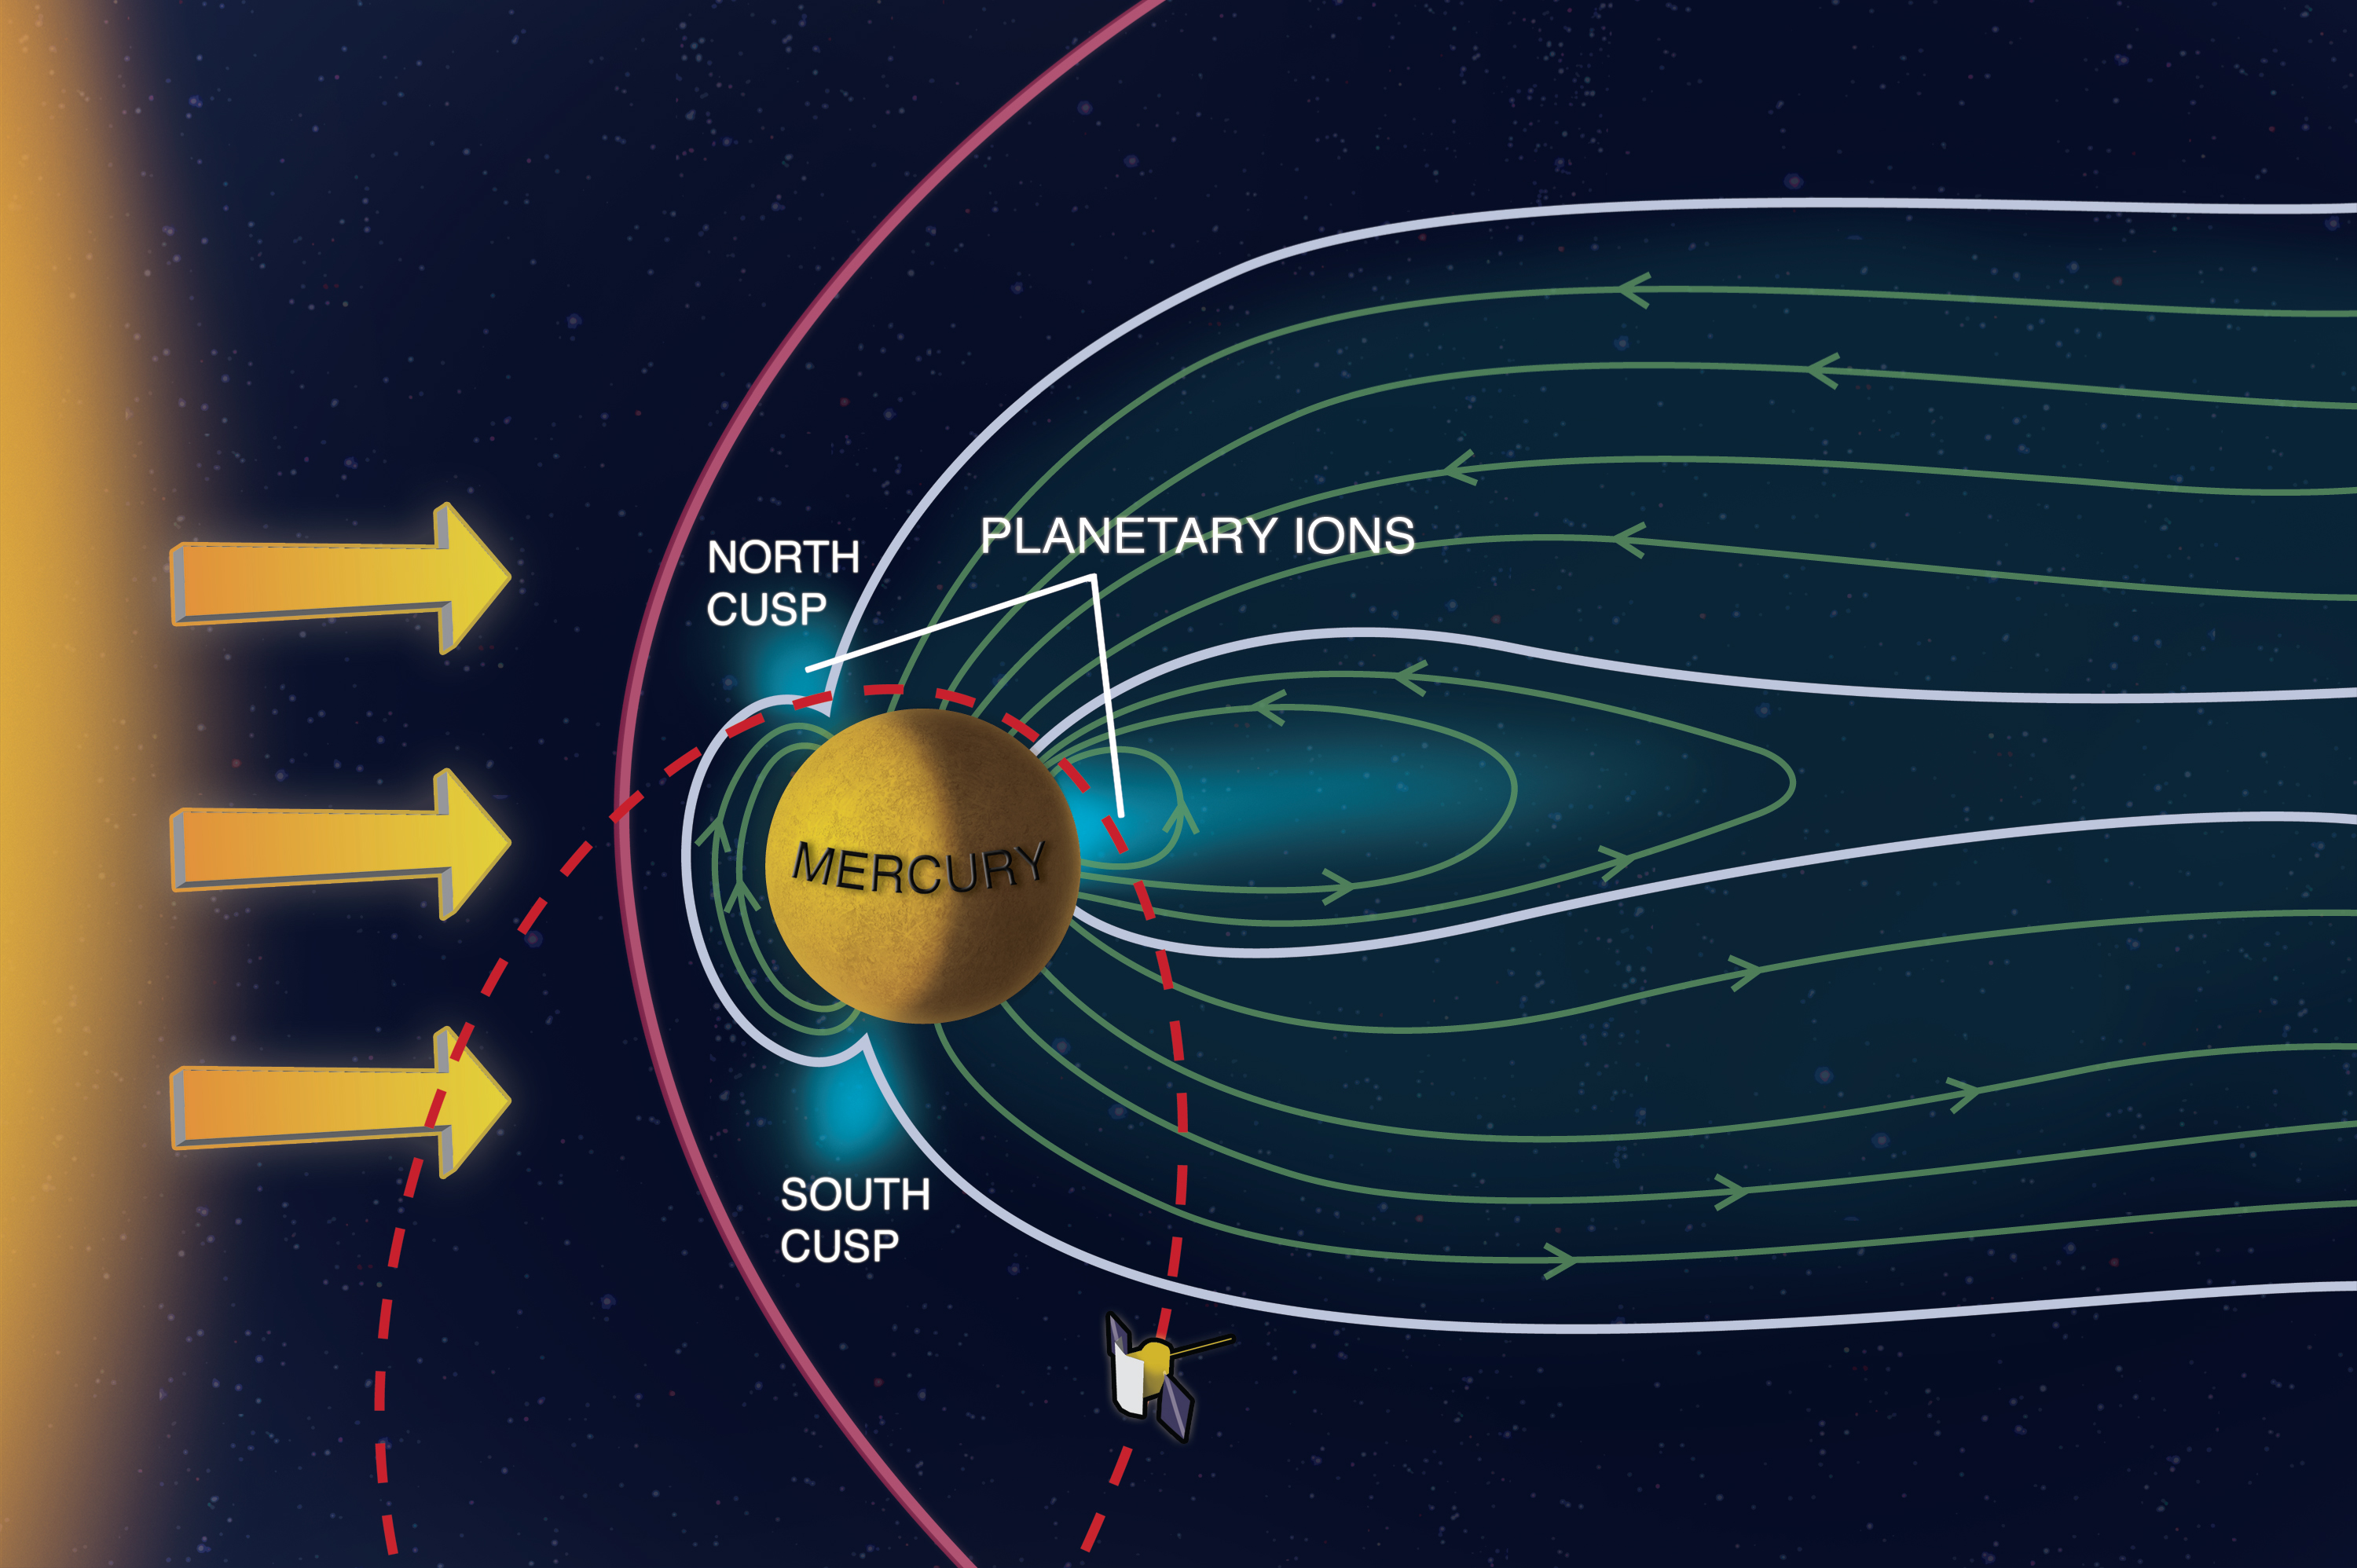 The MESSENGER spacecraft is currently in orbit around planet Mercury. The Fast Imaging Plasma Spectrometer (FIPS) on board is taking the first global measurements of the charged particles in Mercury's space environment. FIPS found that at the magnetic cusps near the planet's poles, the solar wind is able to bear down on Mercury enough to blast particles from its surface into its wispy atmosphere. Shannon Kohlitz, Media Academica, LLC